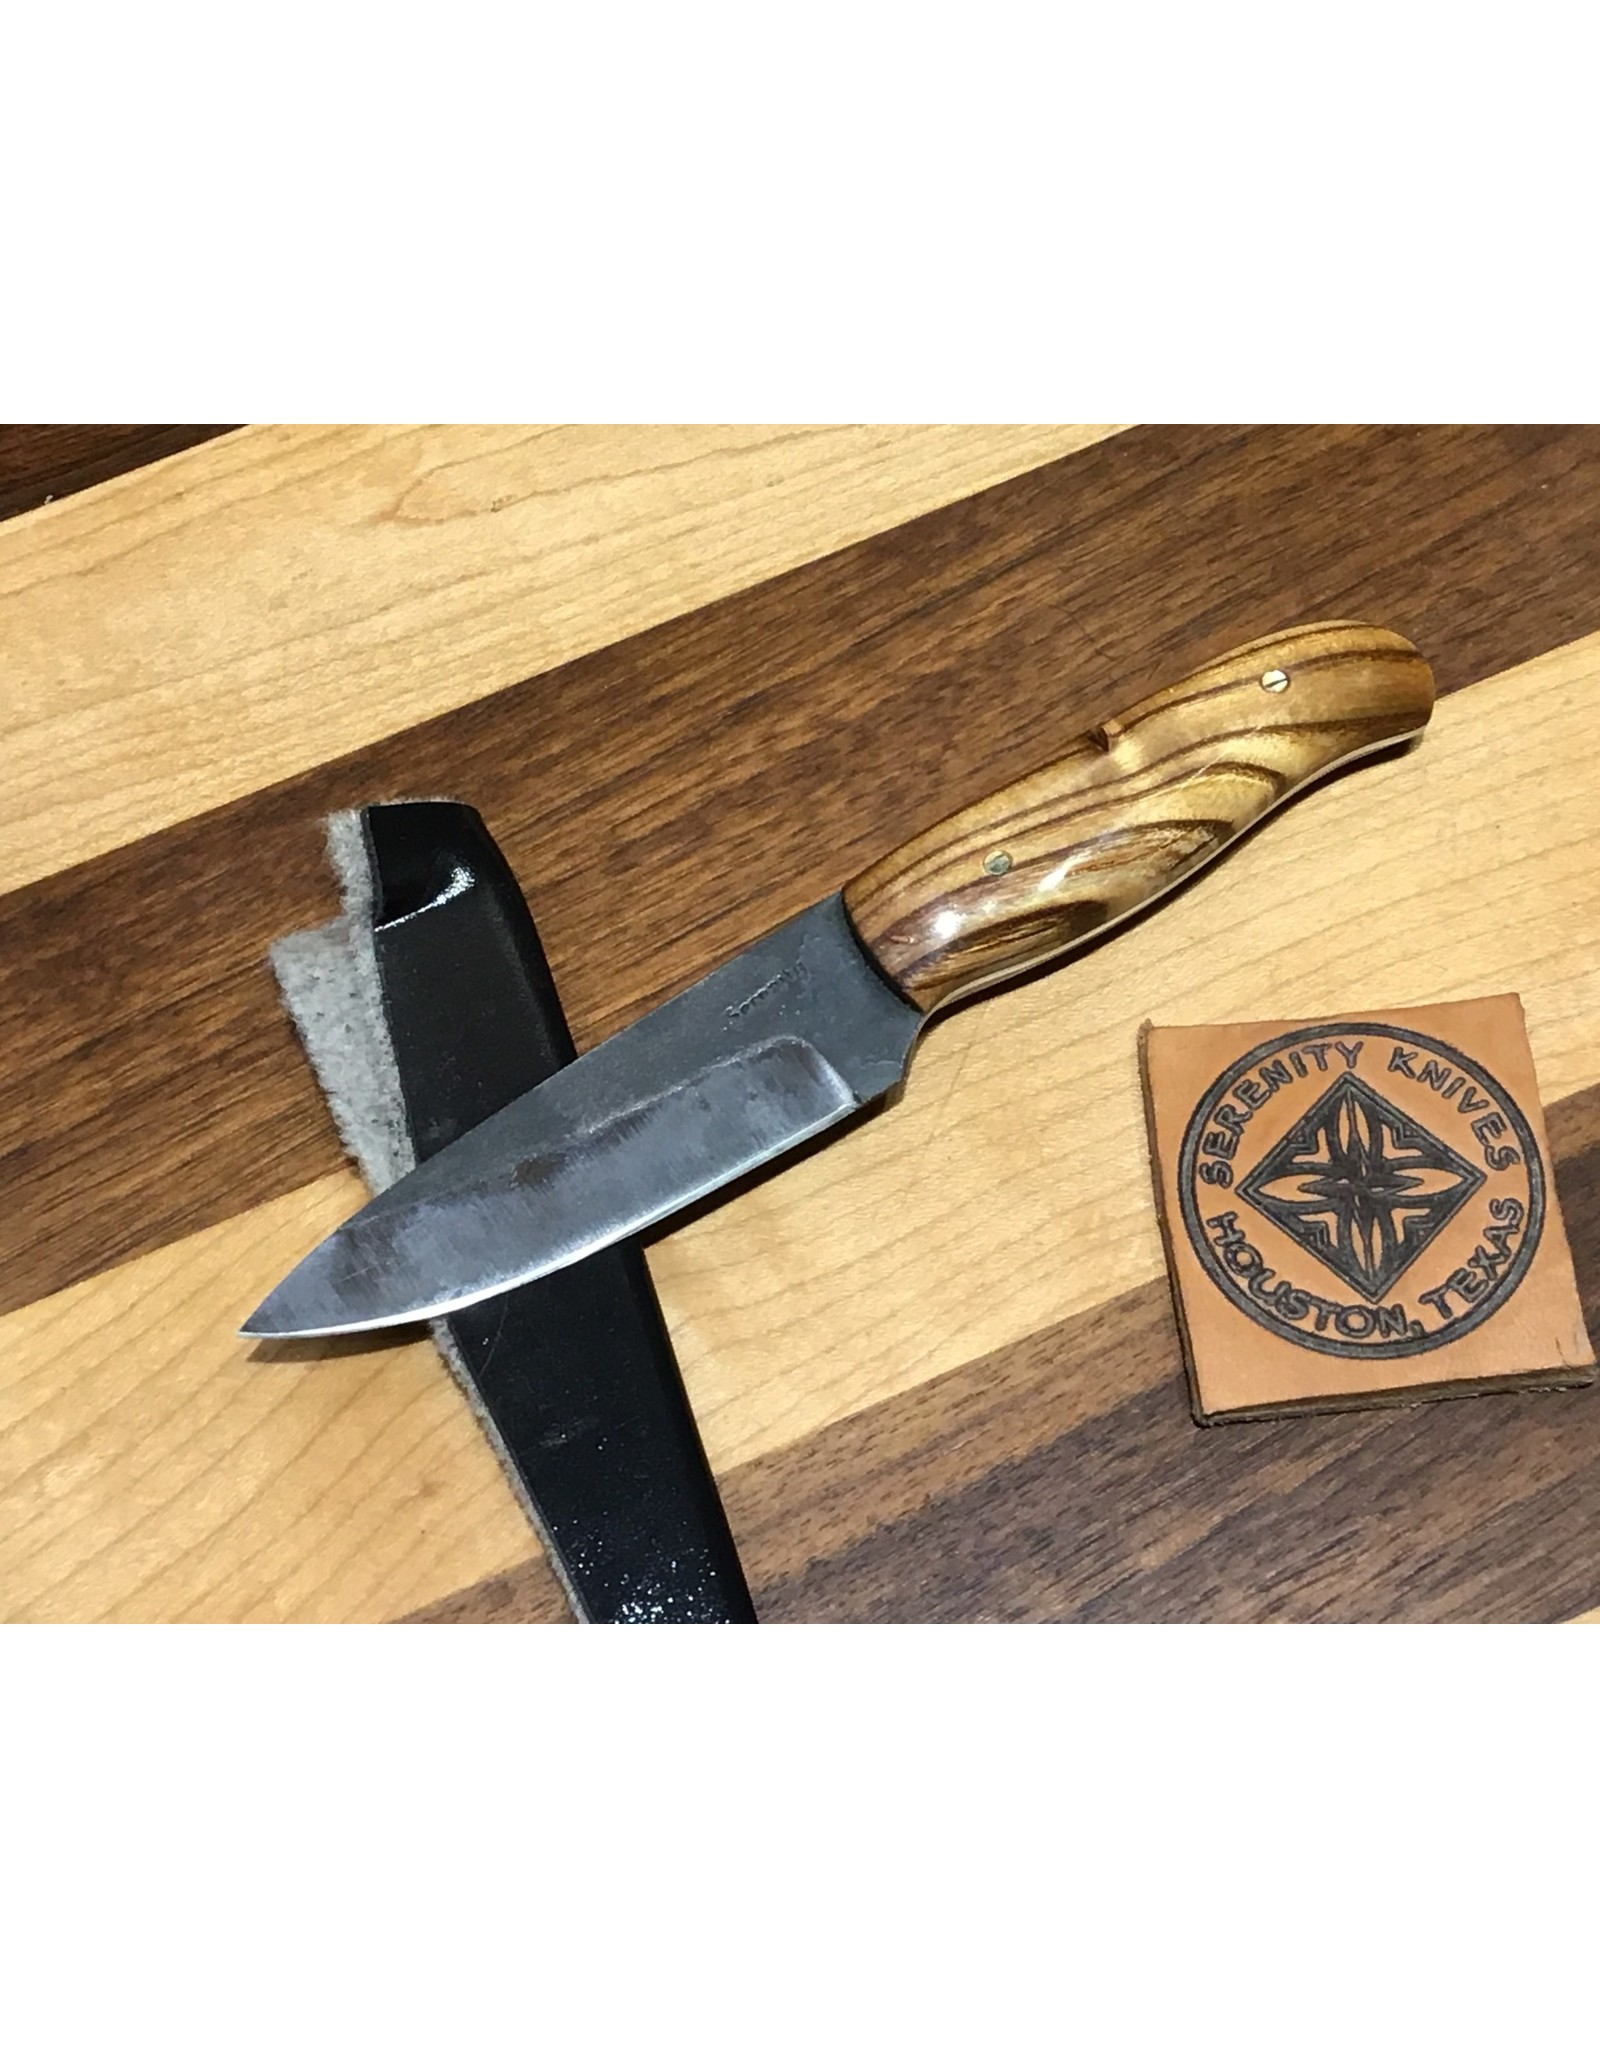 Serenity Paring Knife Combination Antiqued and Buffed Forge Finish